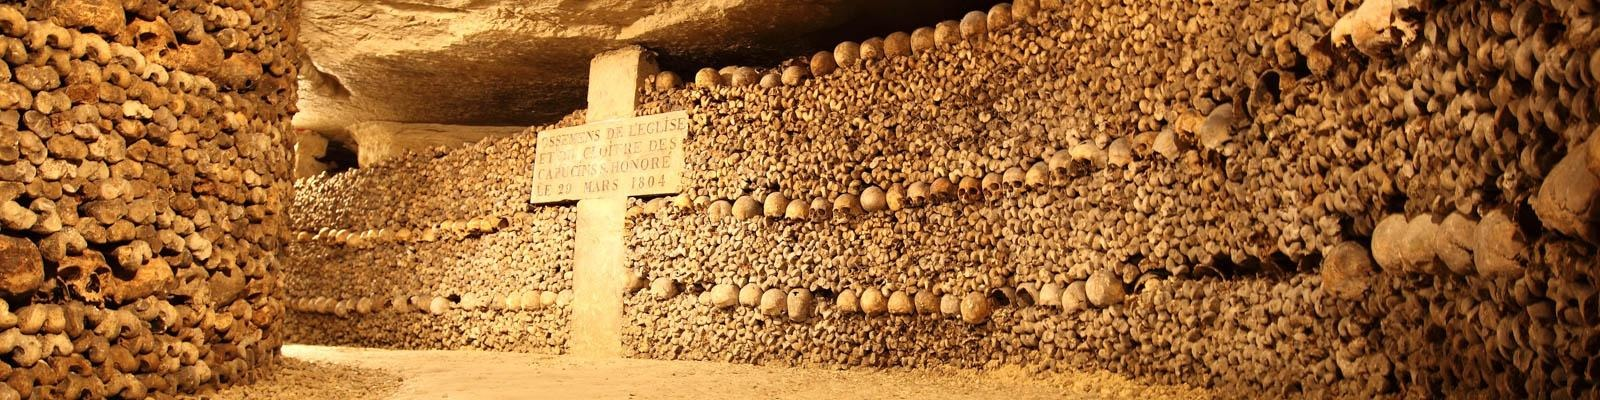 The Do's and Don'ts of the Paris Catacombs